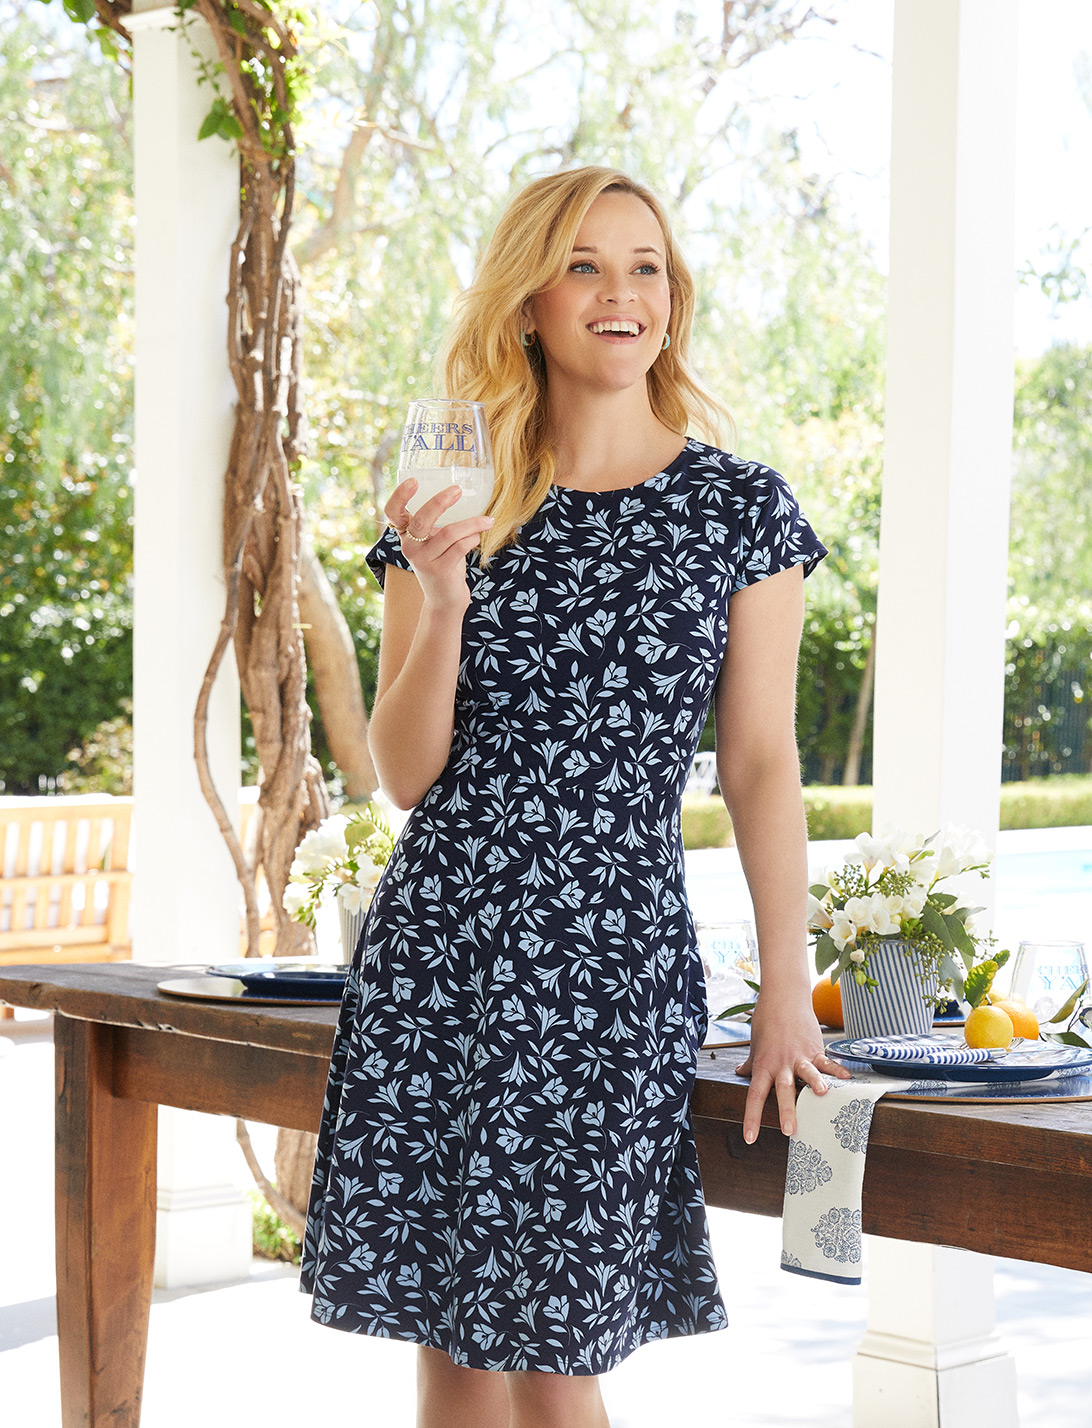 Reese Witherspoon for Draper James, Photography by Amy Neunsinger